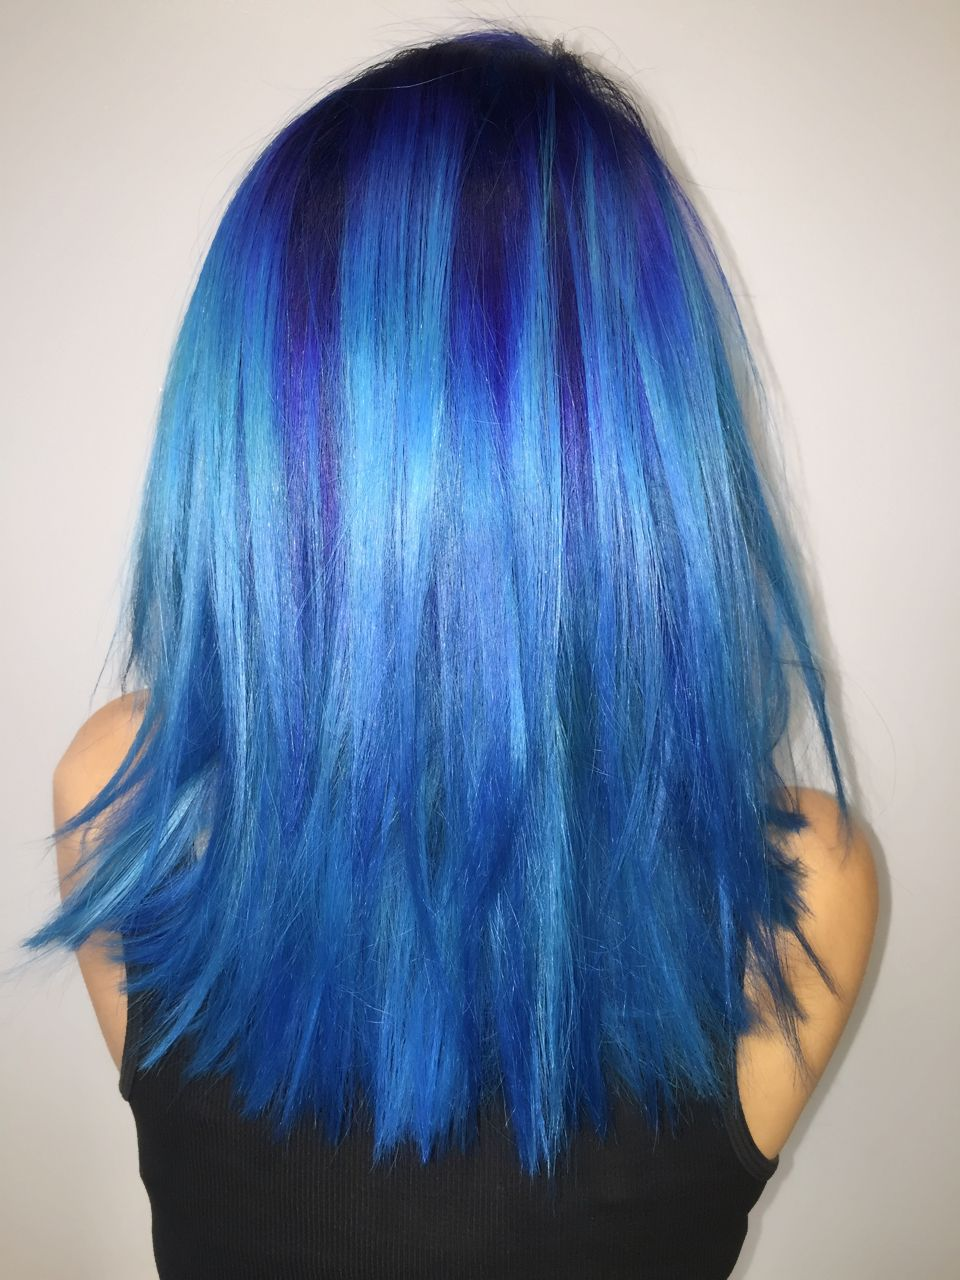 Rooted blue beauty hair cxrrina u model stephaniecakes